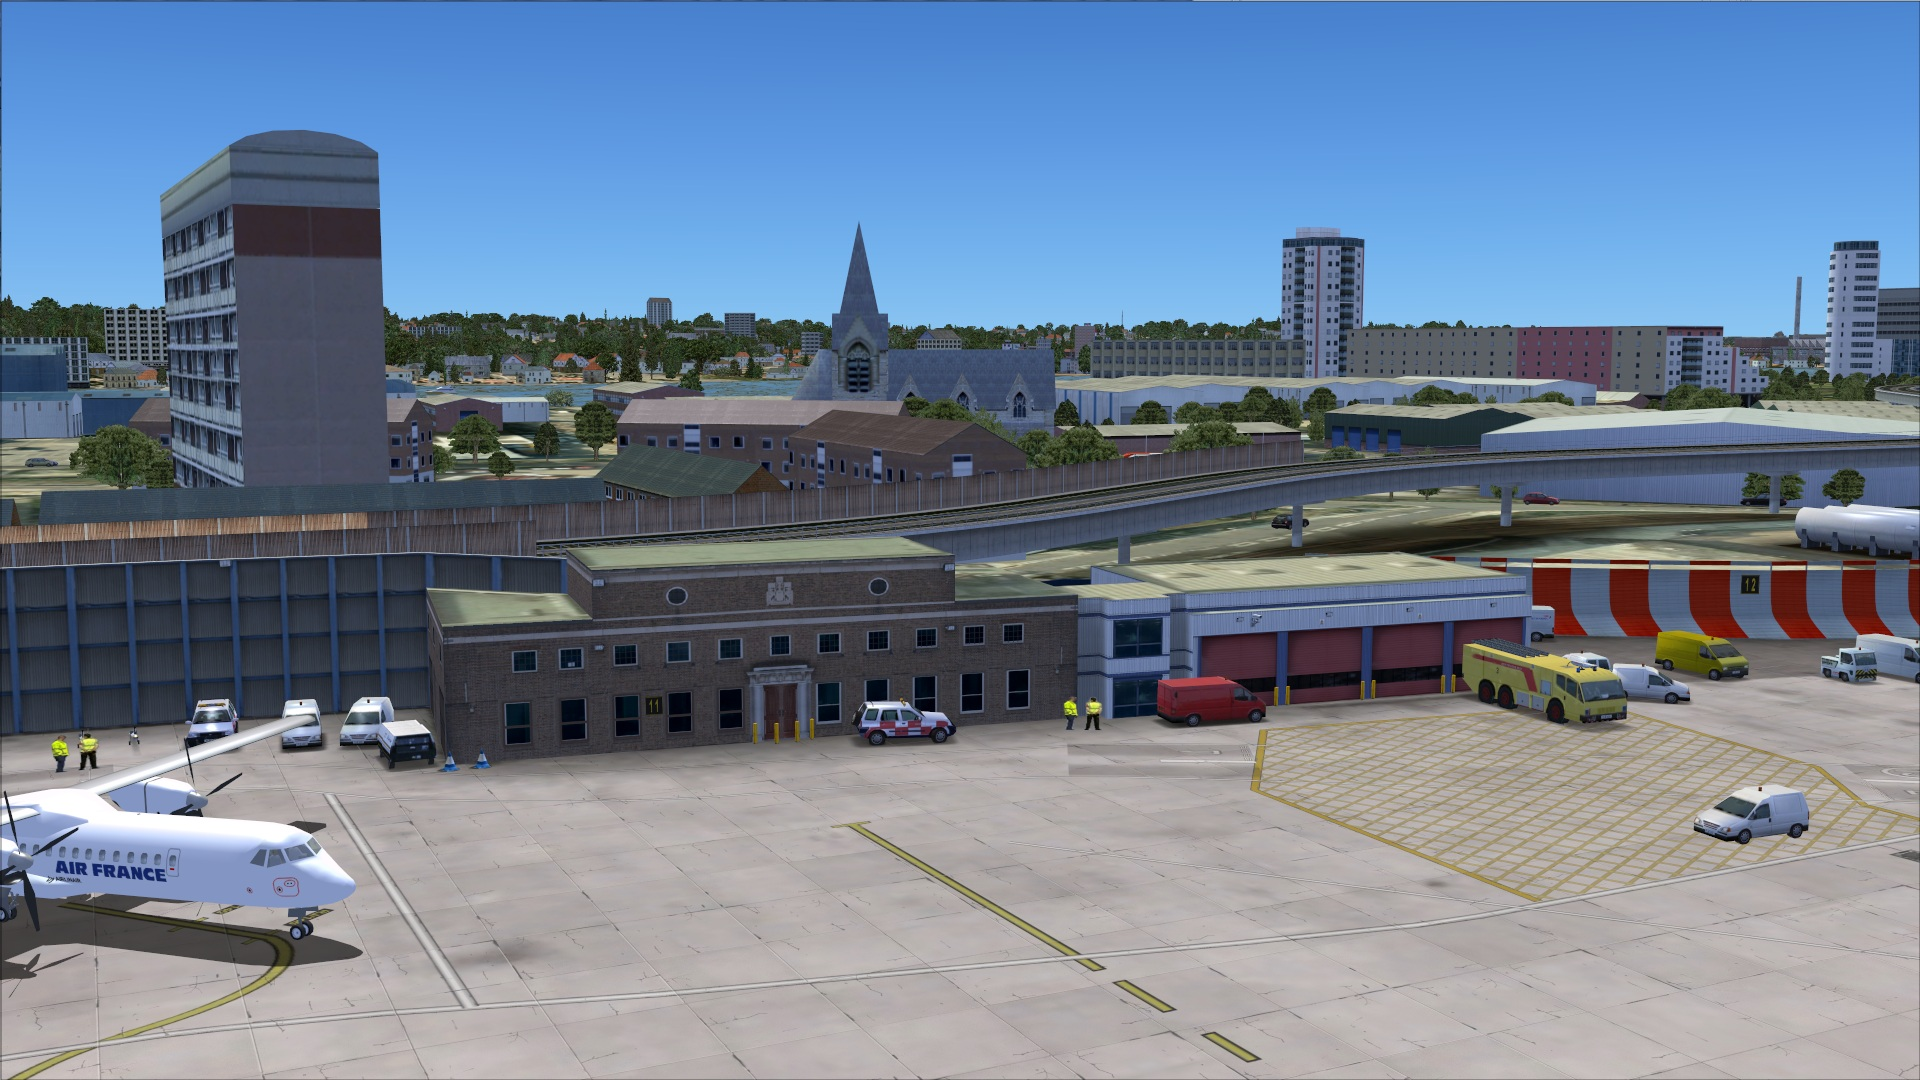 Uk2000 London City Xtreme Eglc For Fsx Uk2000 Have